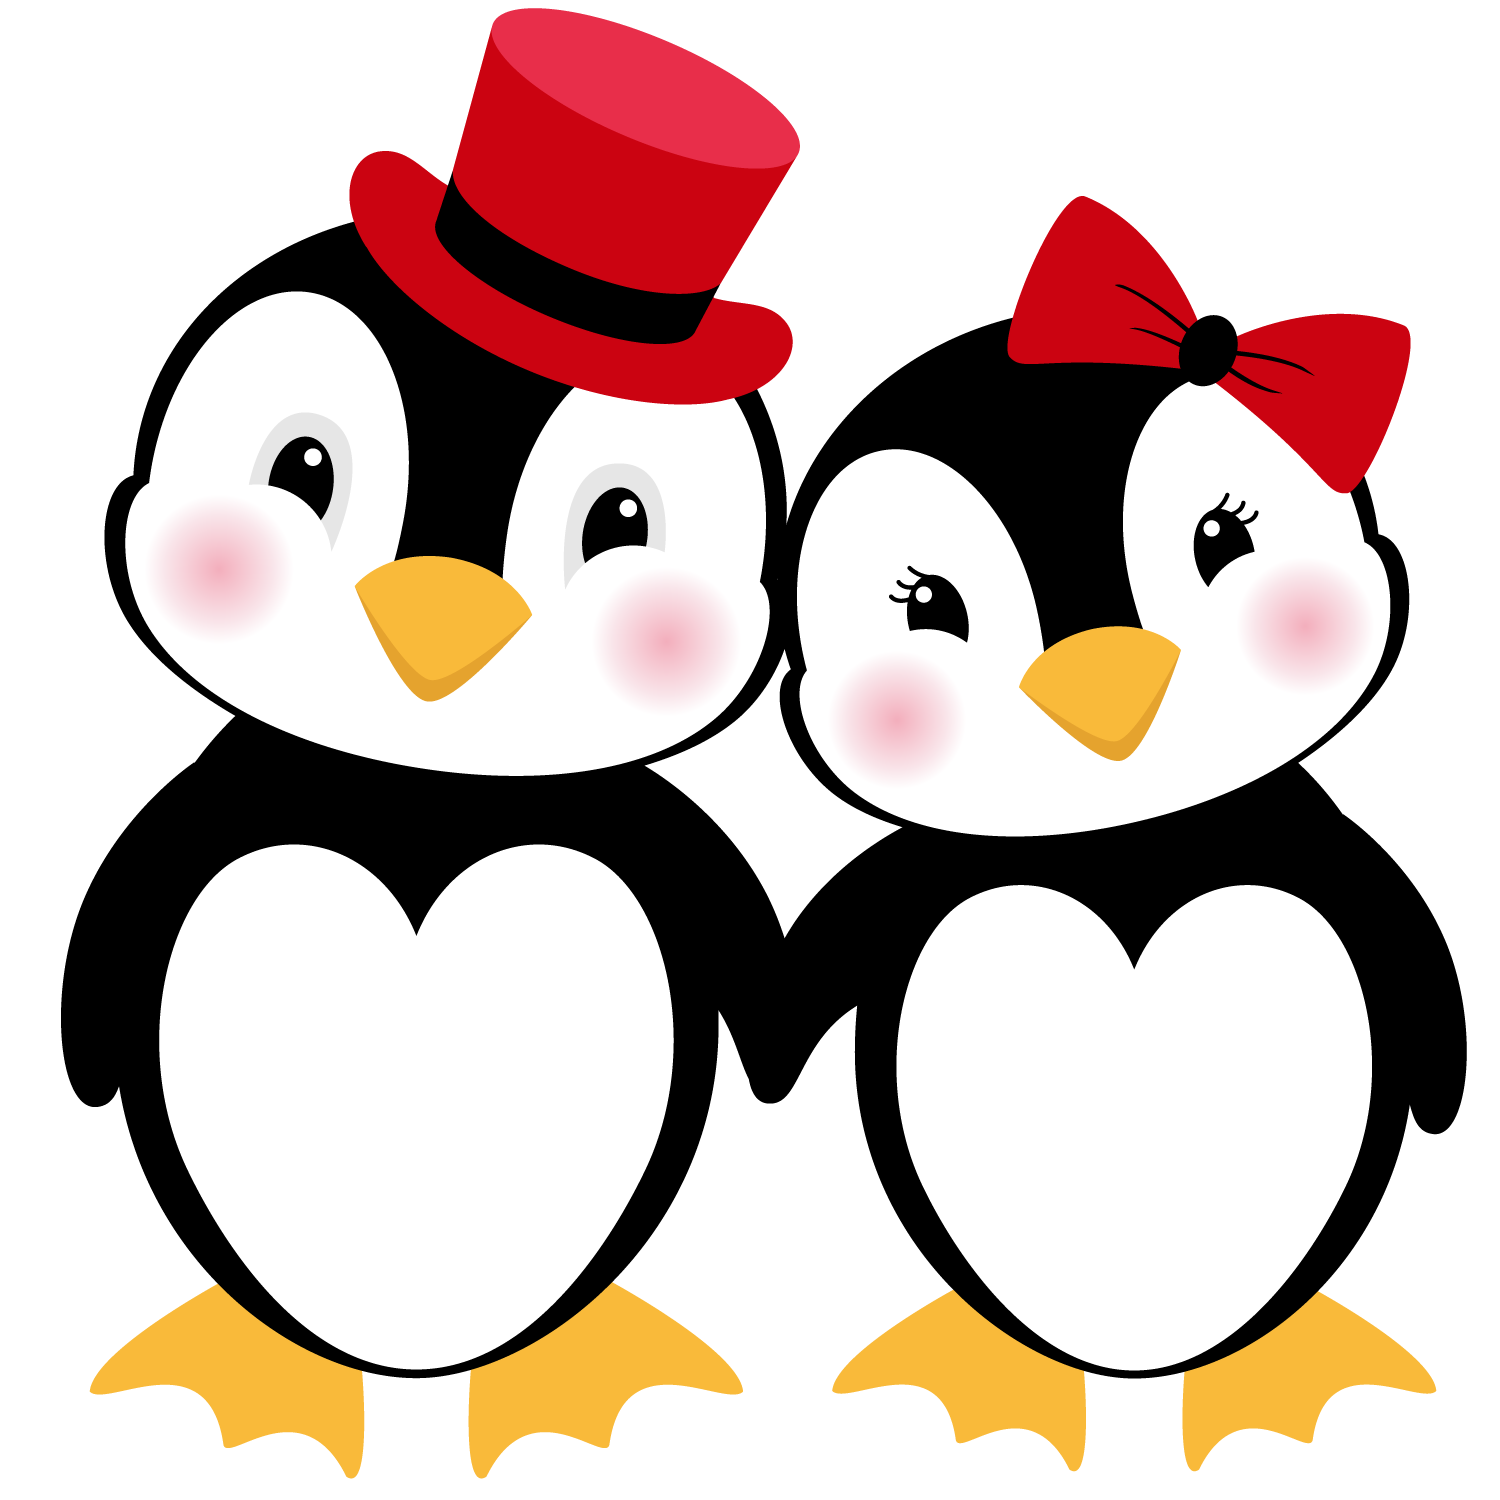 Clipart penquin thank you. Shery k designs